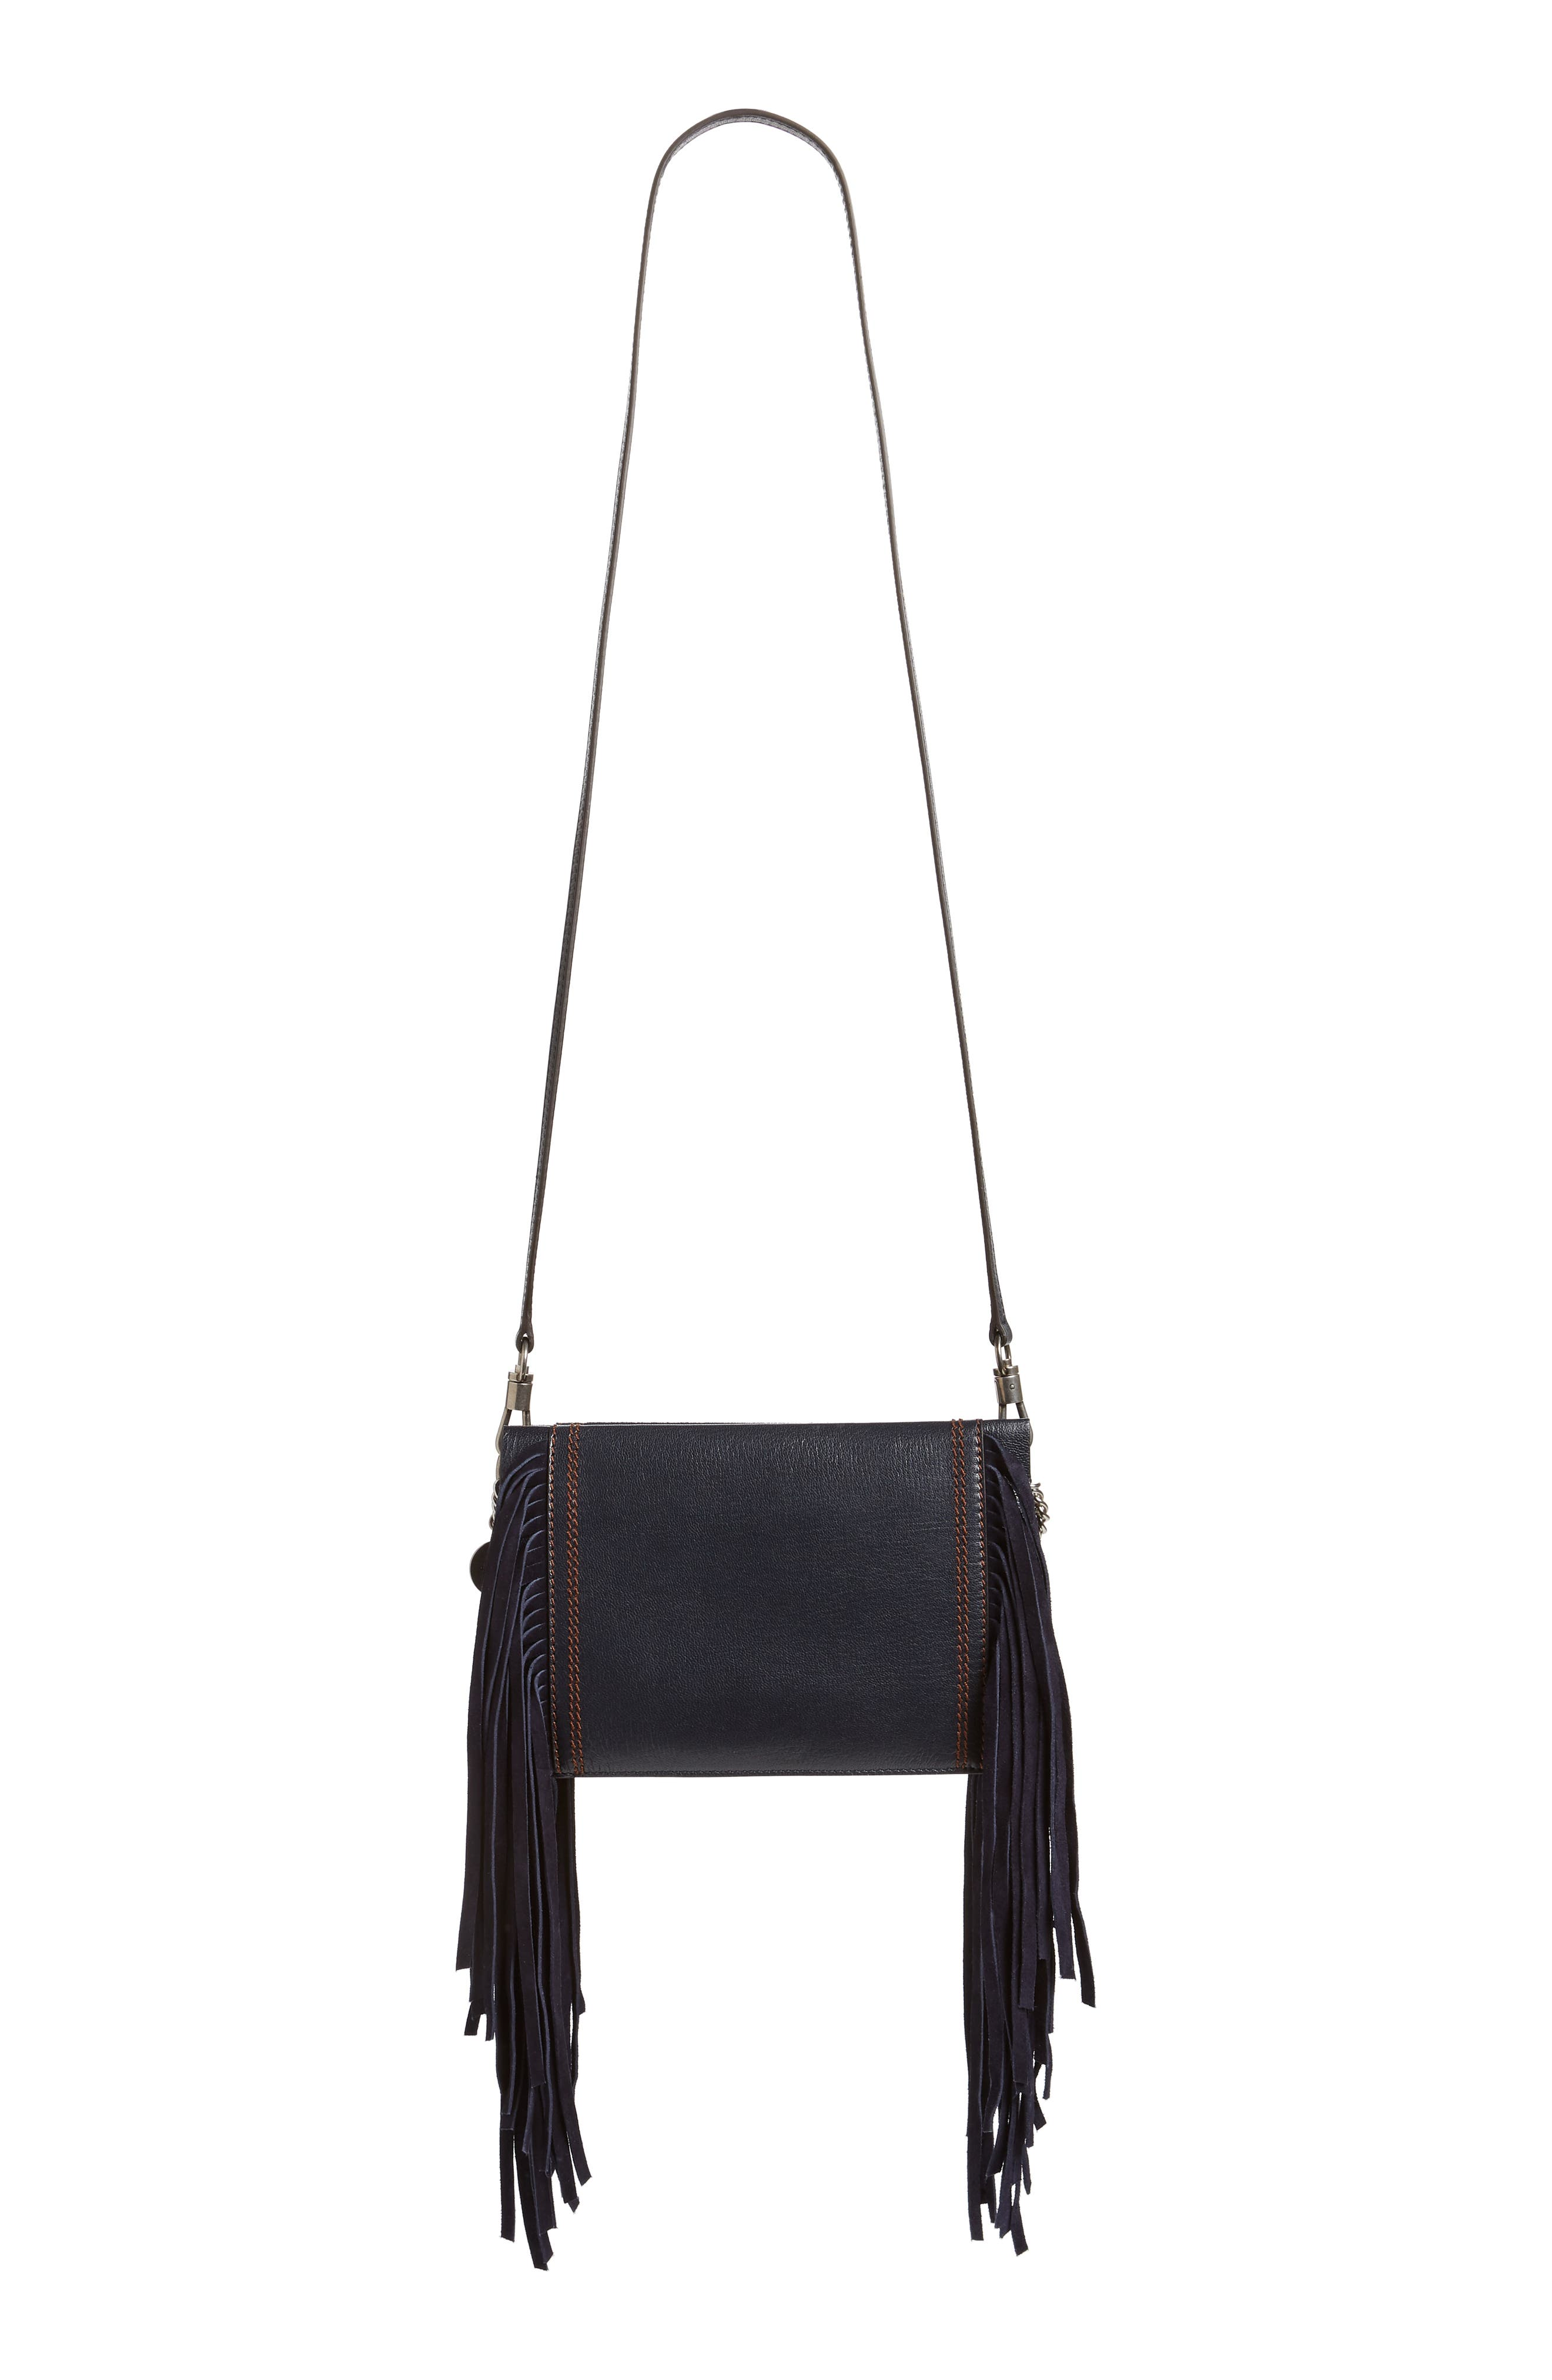 Cross 3 Fringe Leather Crossbody Bag,                             Alternate thumbnail 4, color,                             401